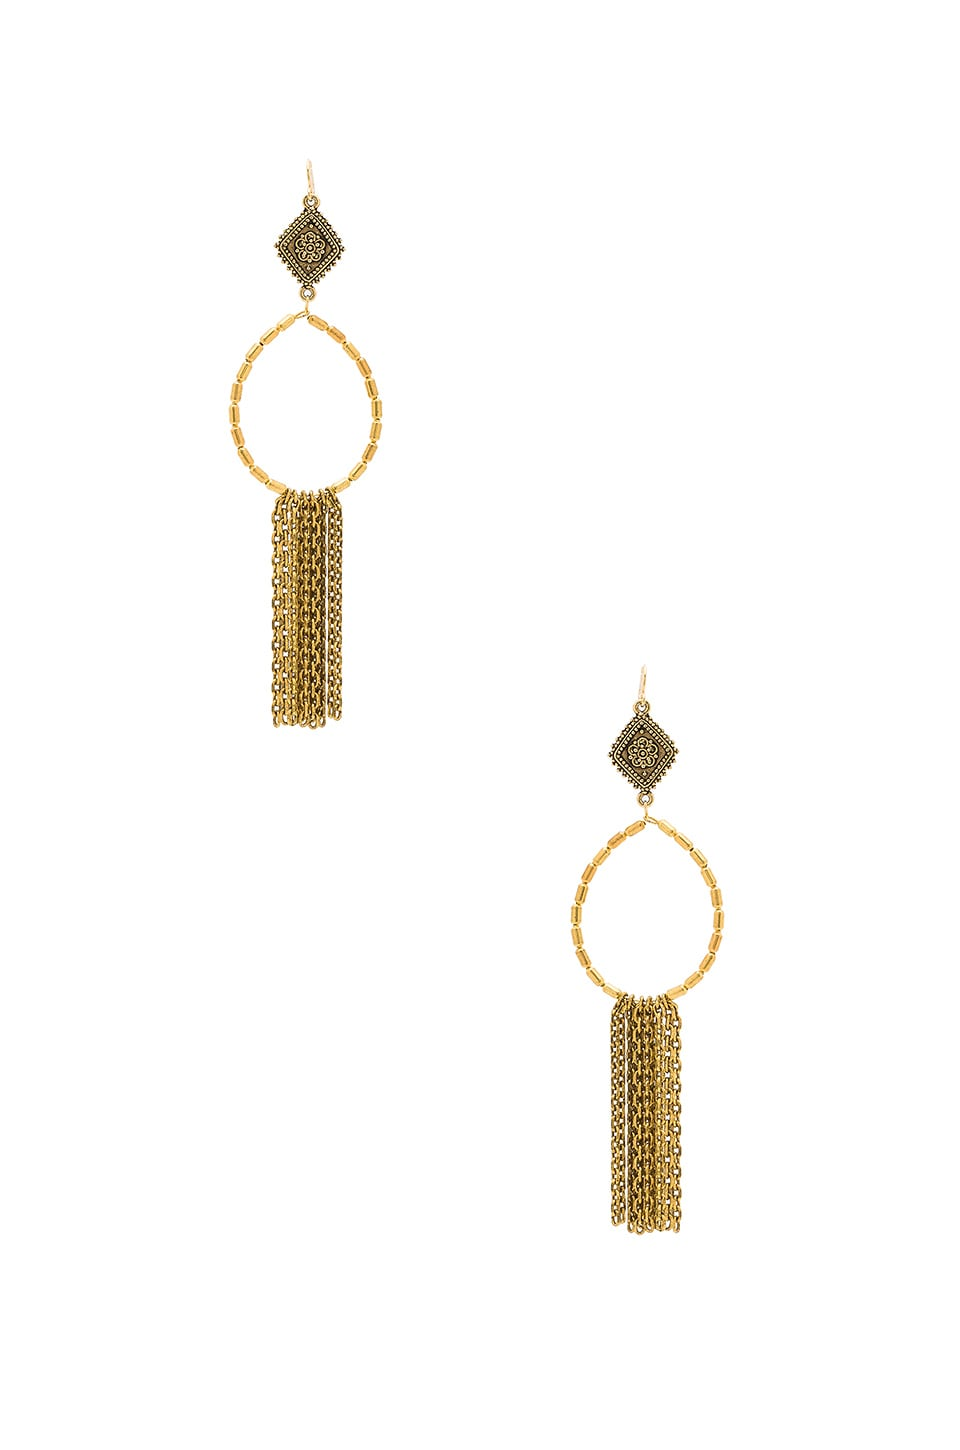 Vanessa Mooney Hailey Hoop Earrings in Gold